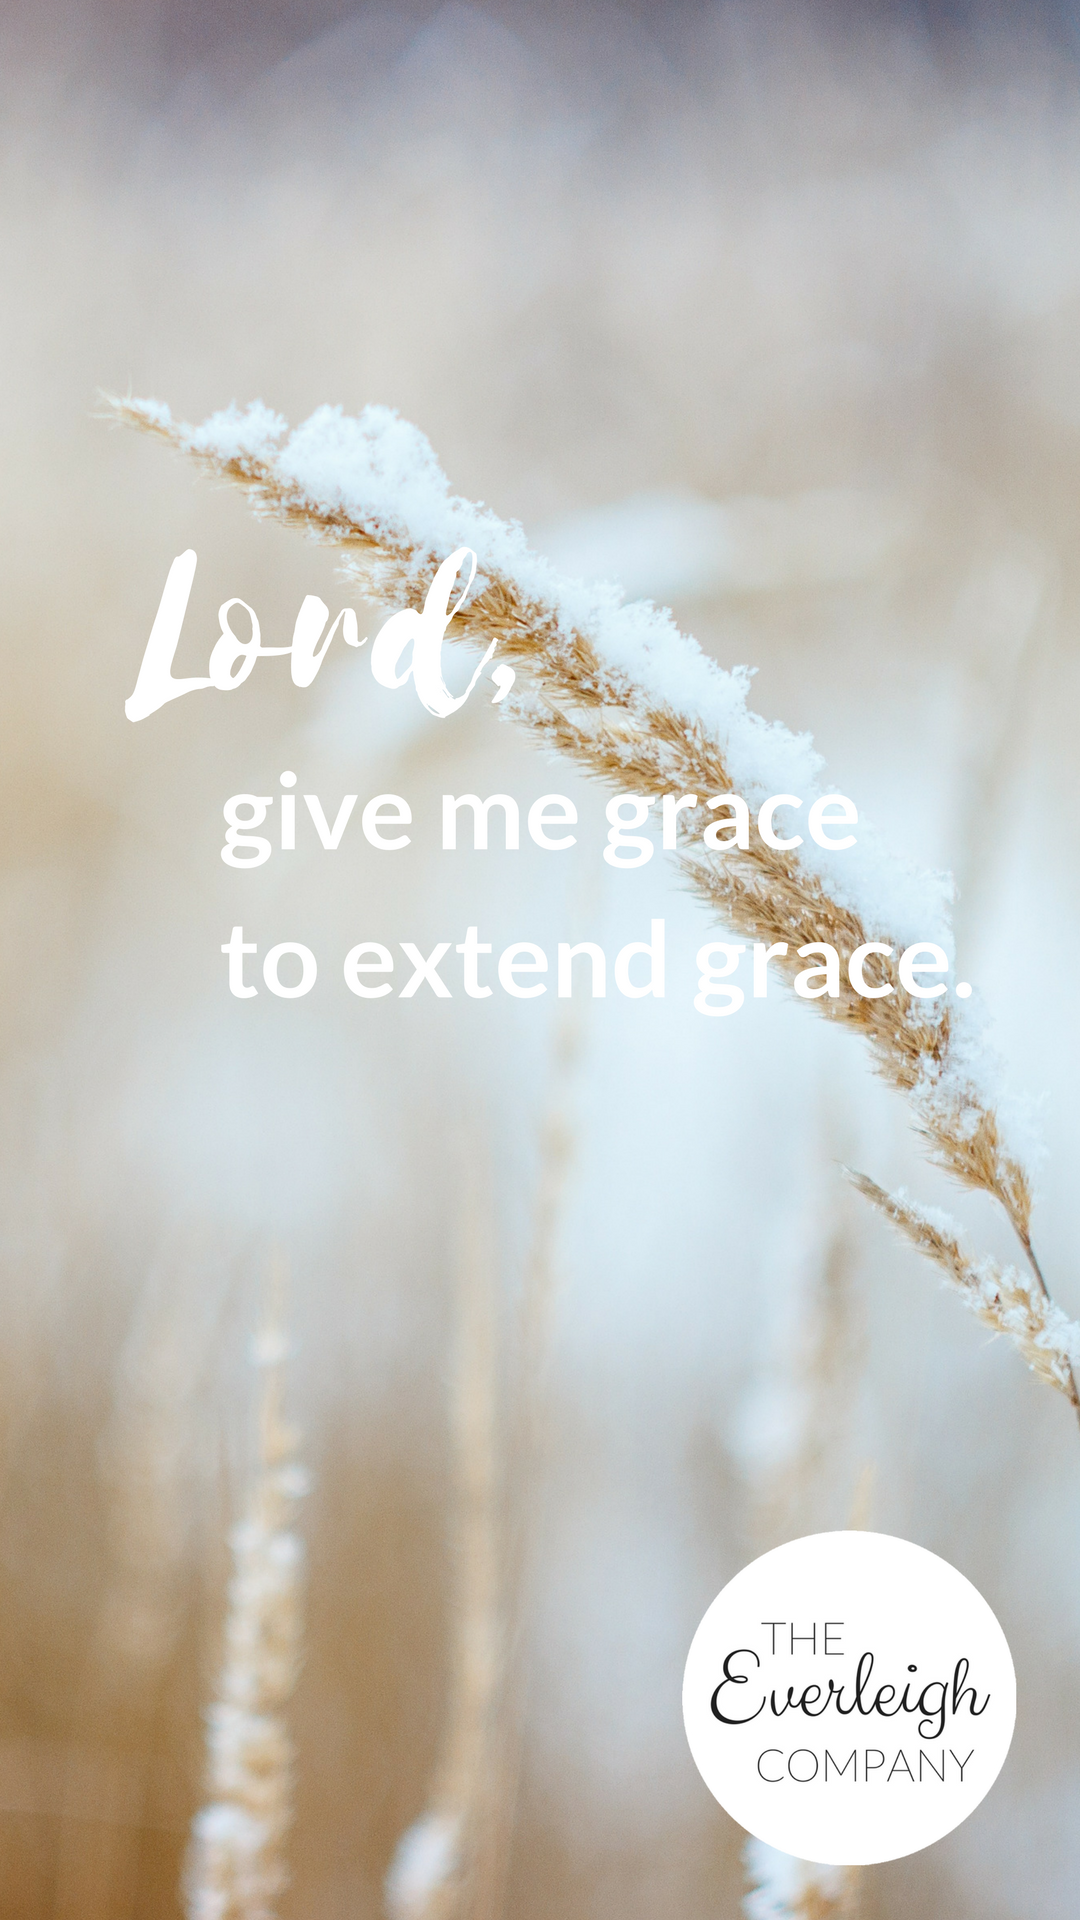 Everleigh Company iPhone Wallpaper Grace to Extend Grace